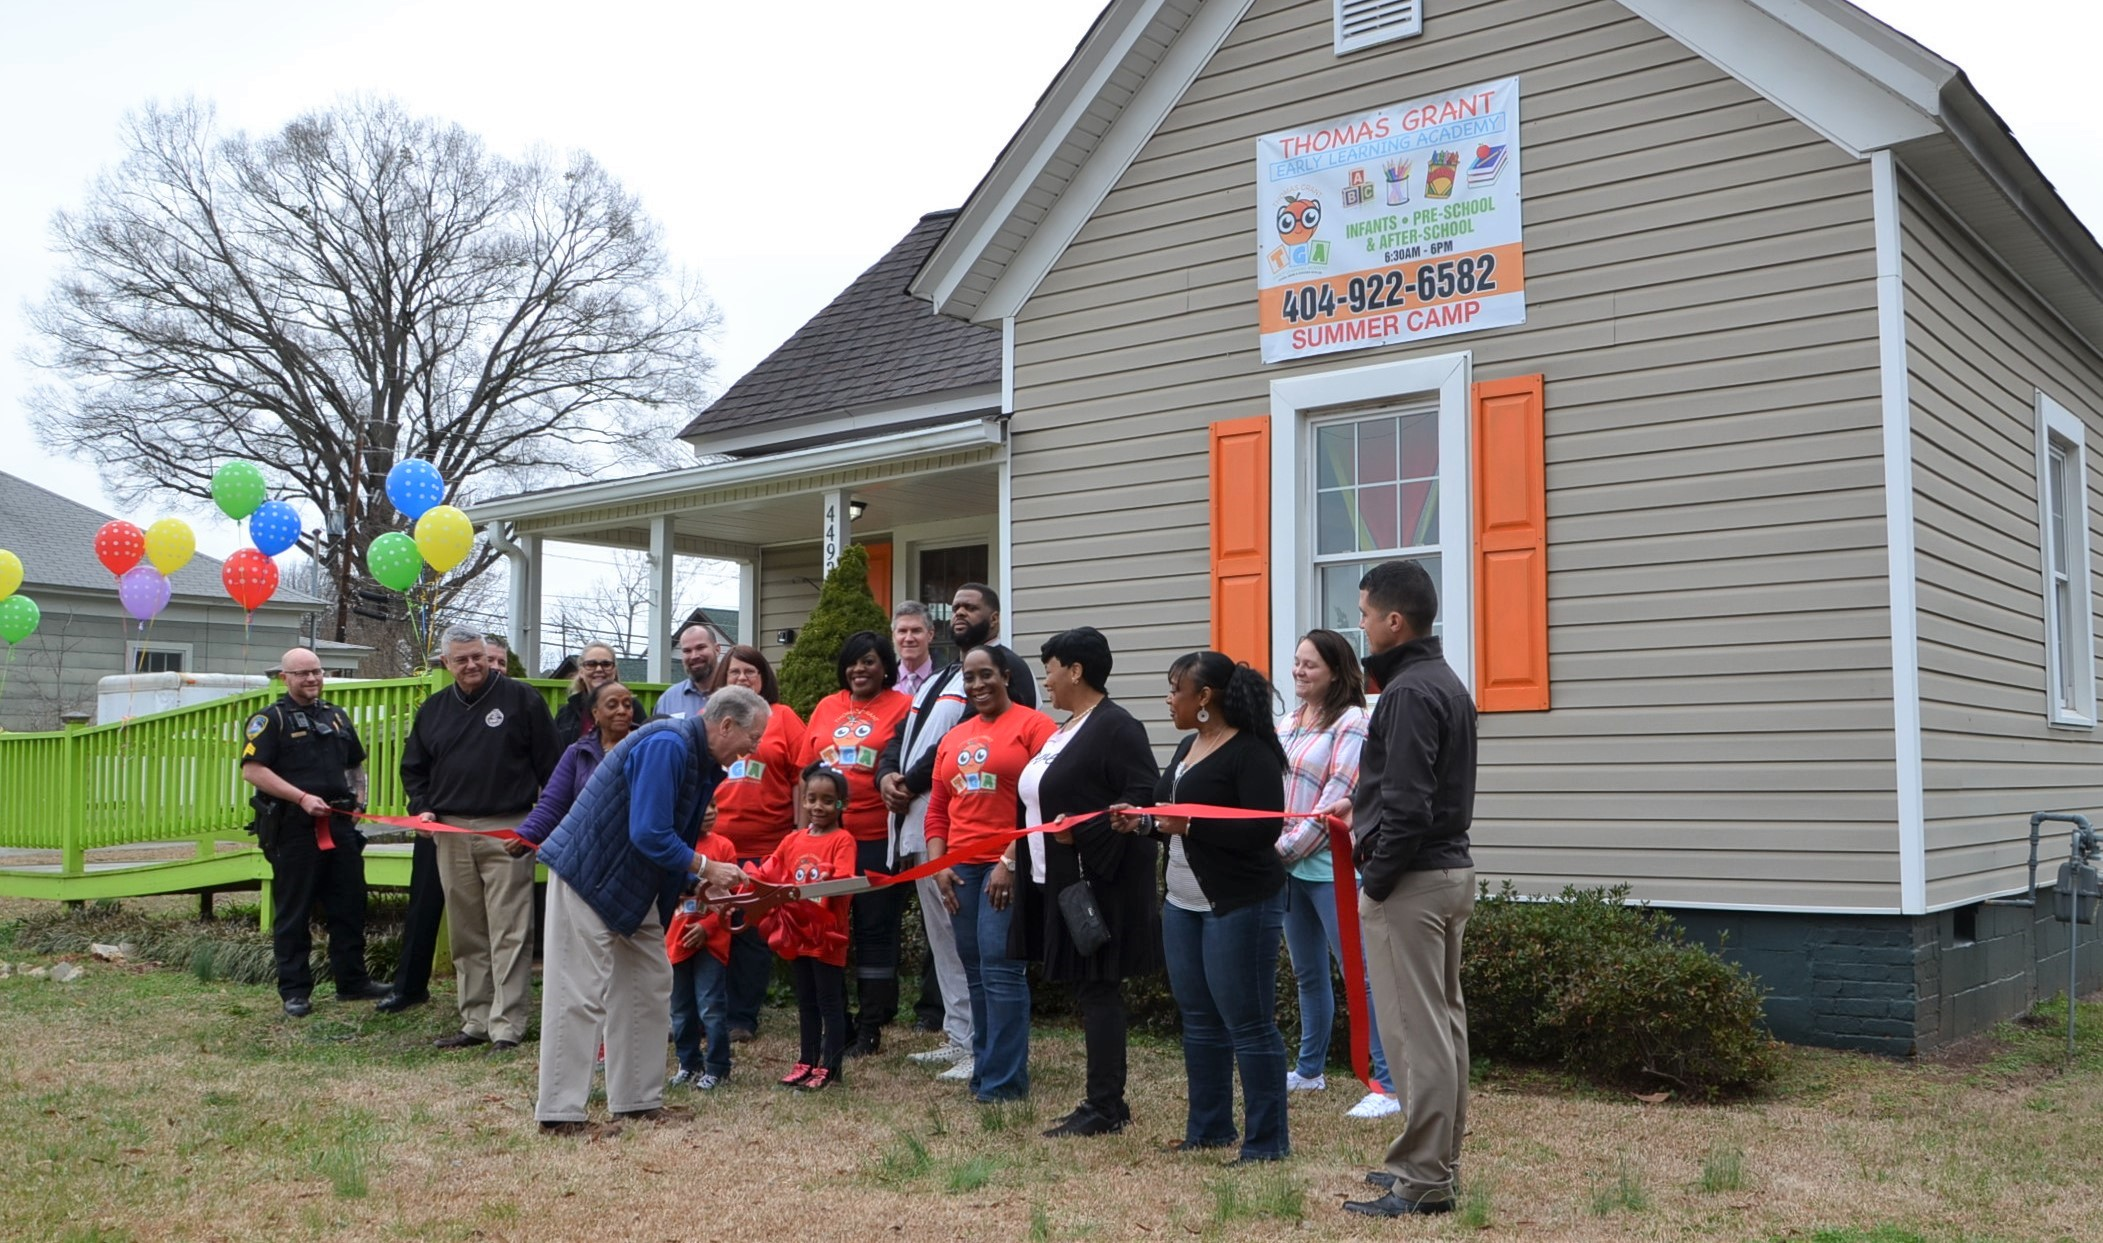 Image of Ribbon Cutting at Thomas Grant Early Learning Academy